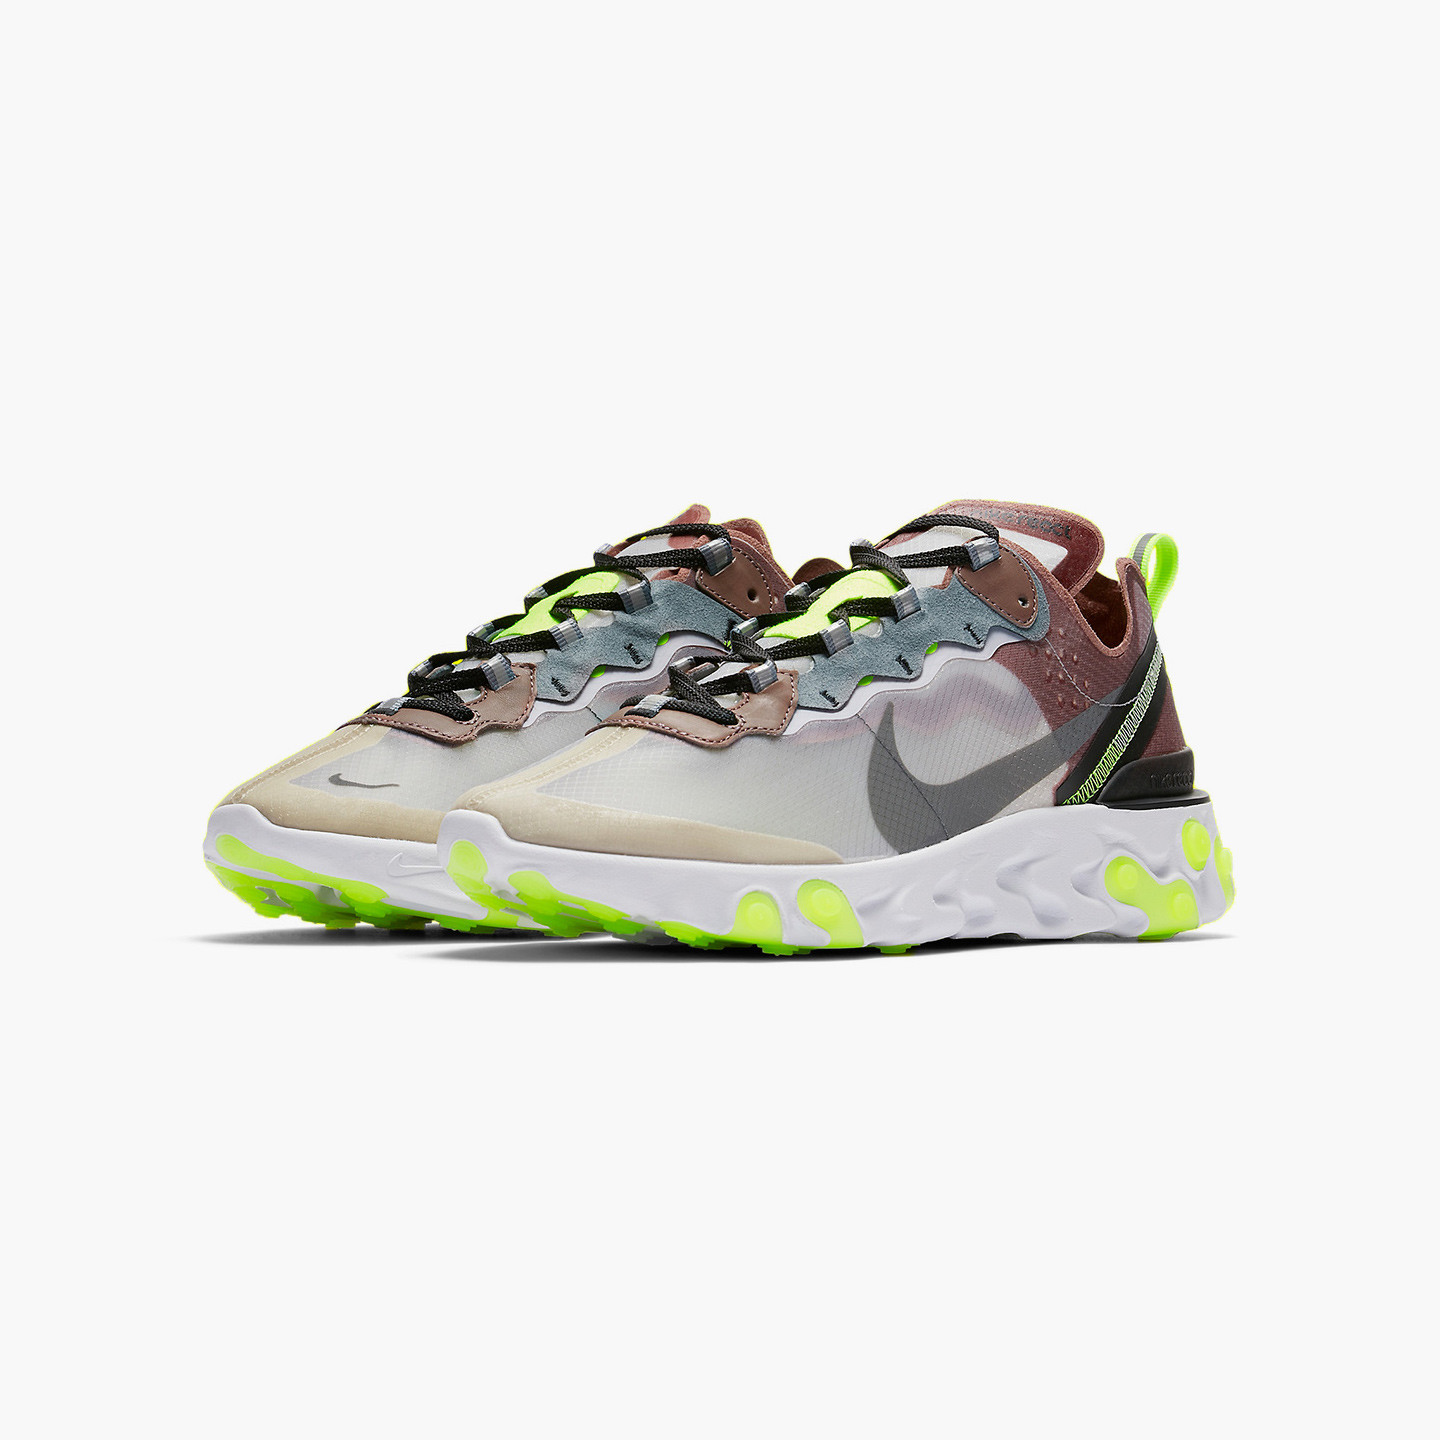 Nike React Element 87 Desert Sand / Cool Grey / Smokey Mauve AQ1090-002